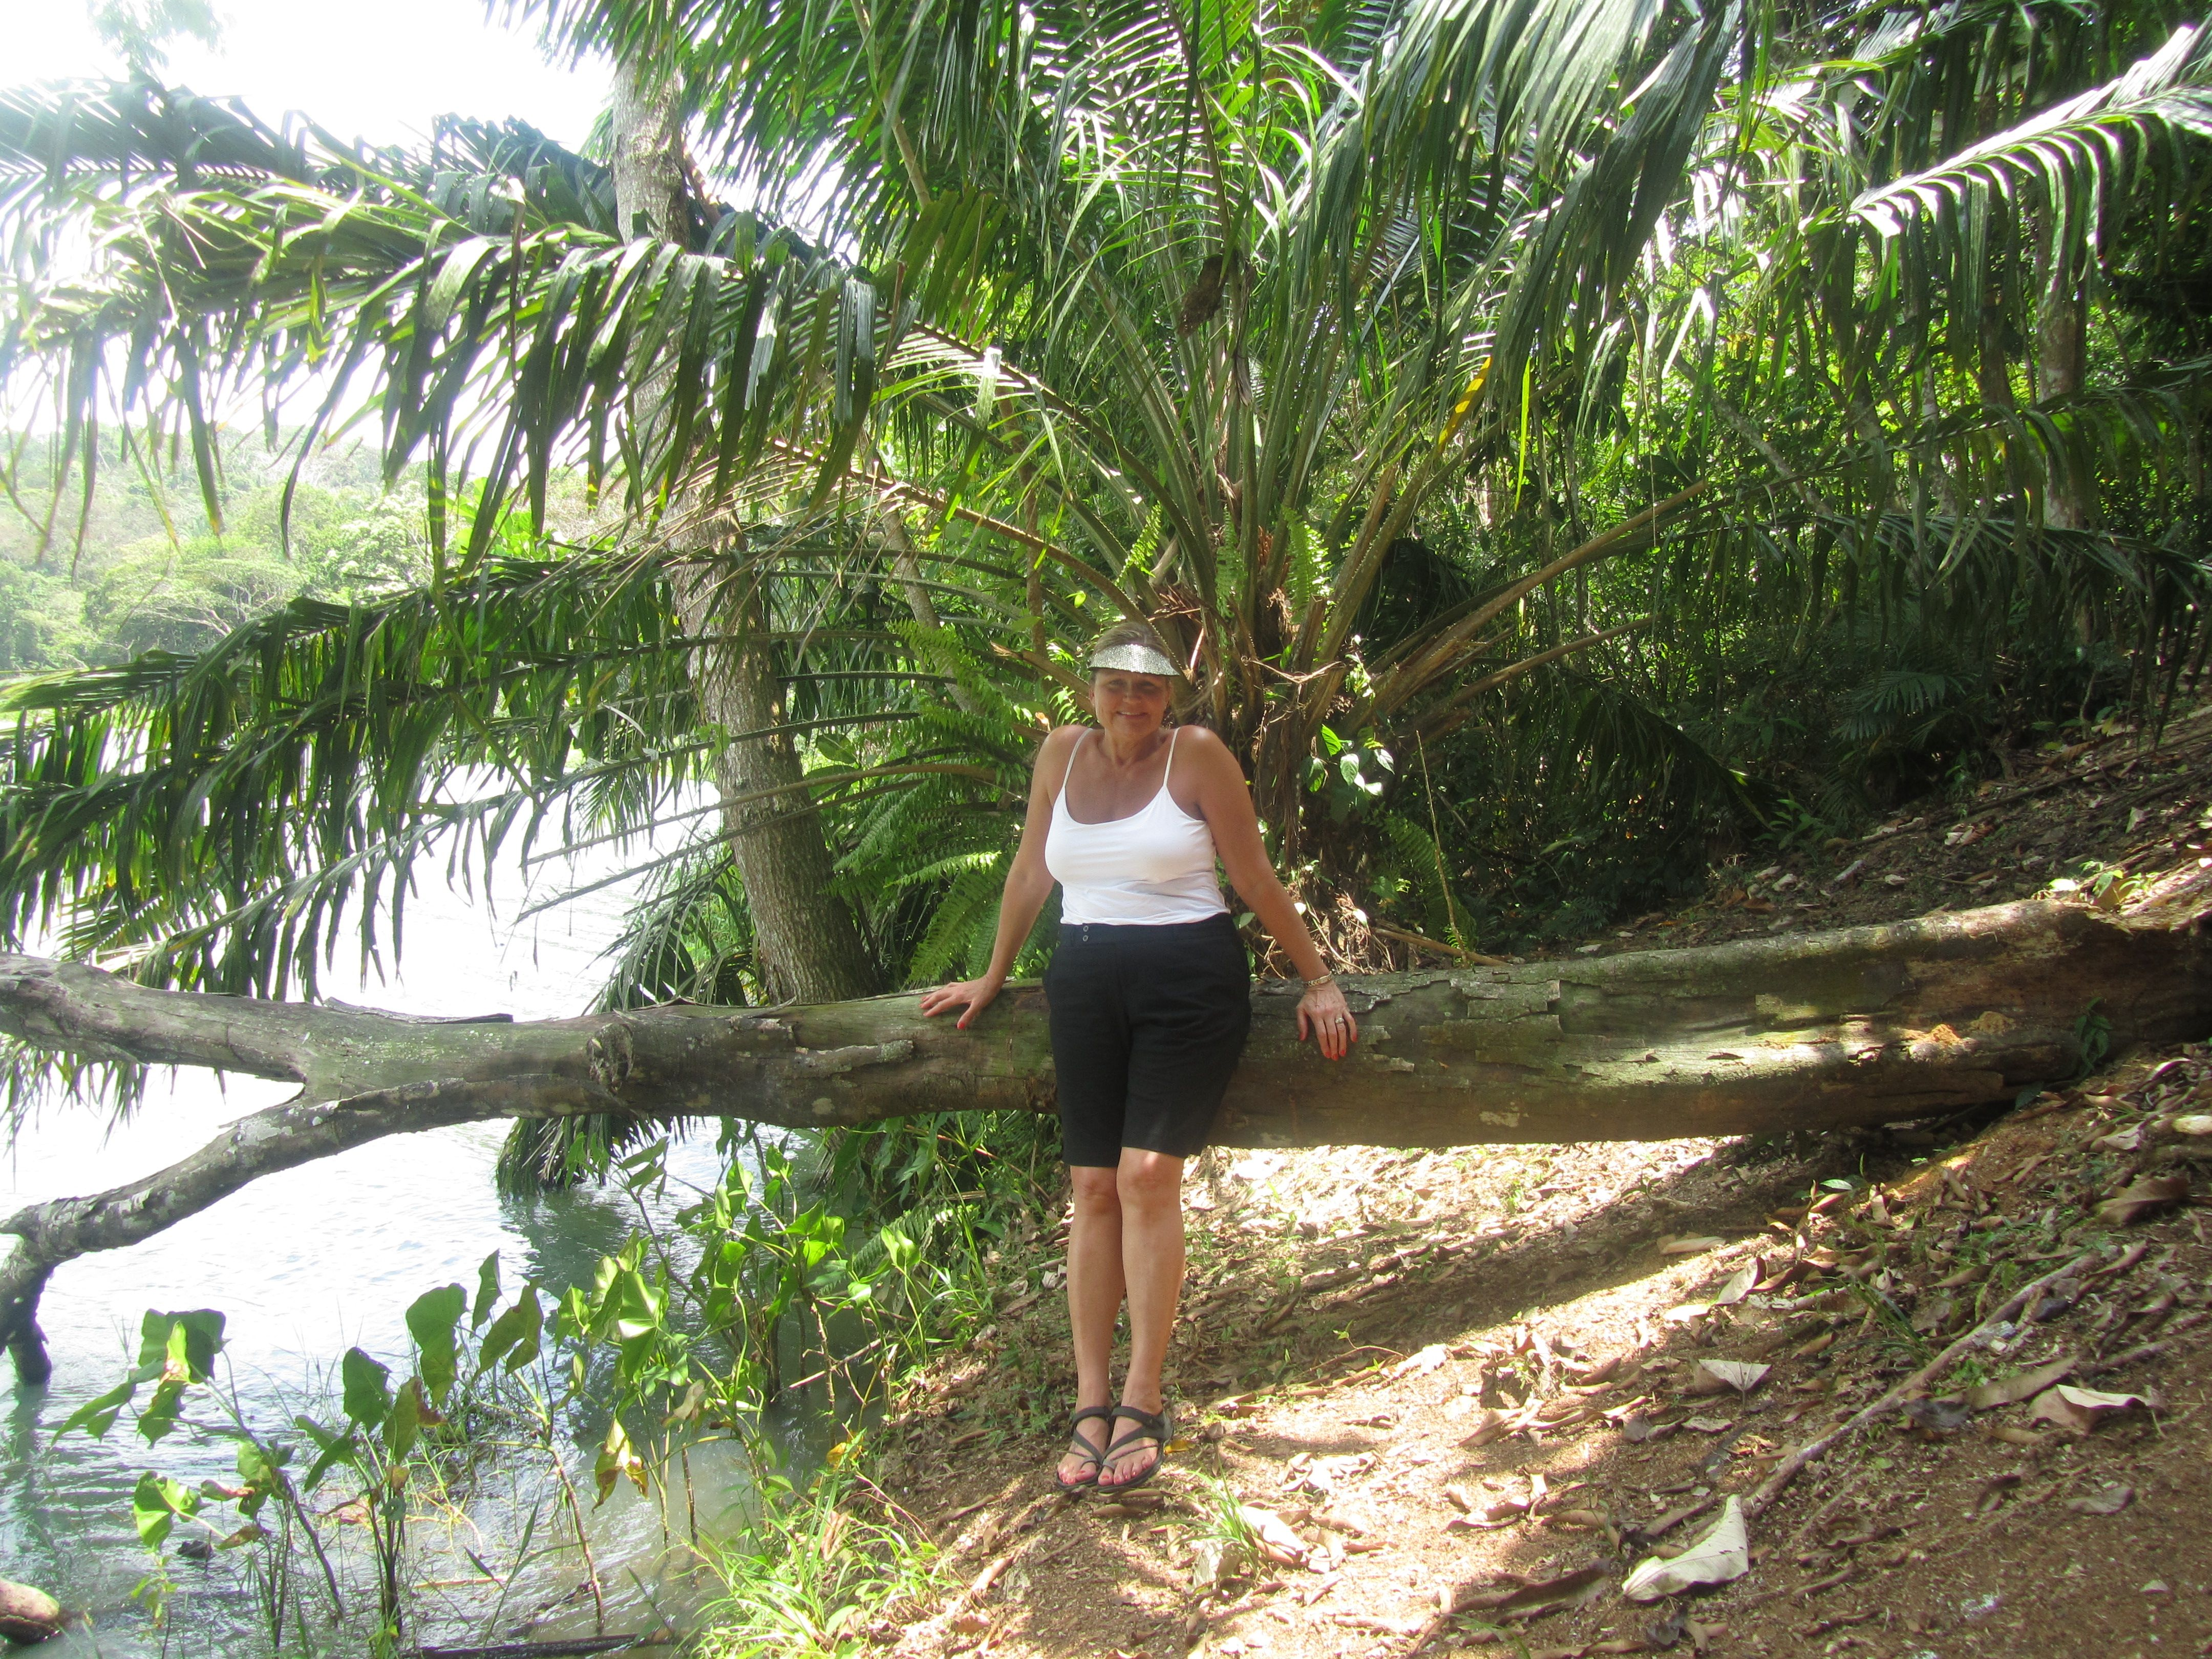 Next to Panama Canal in jungle